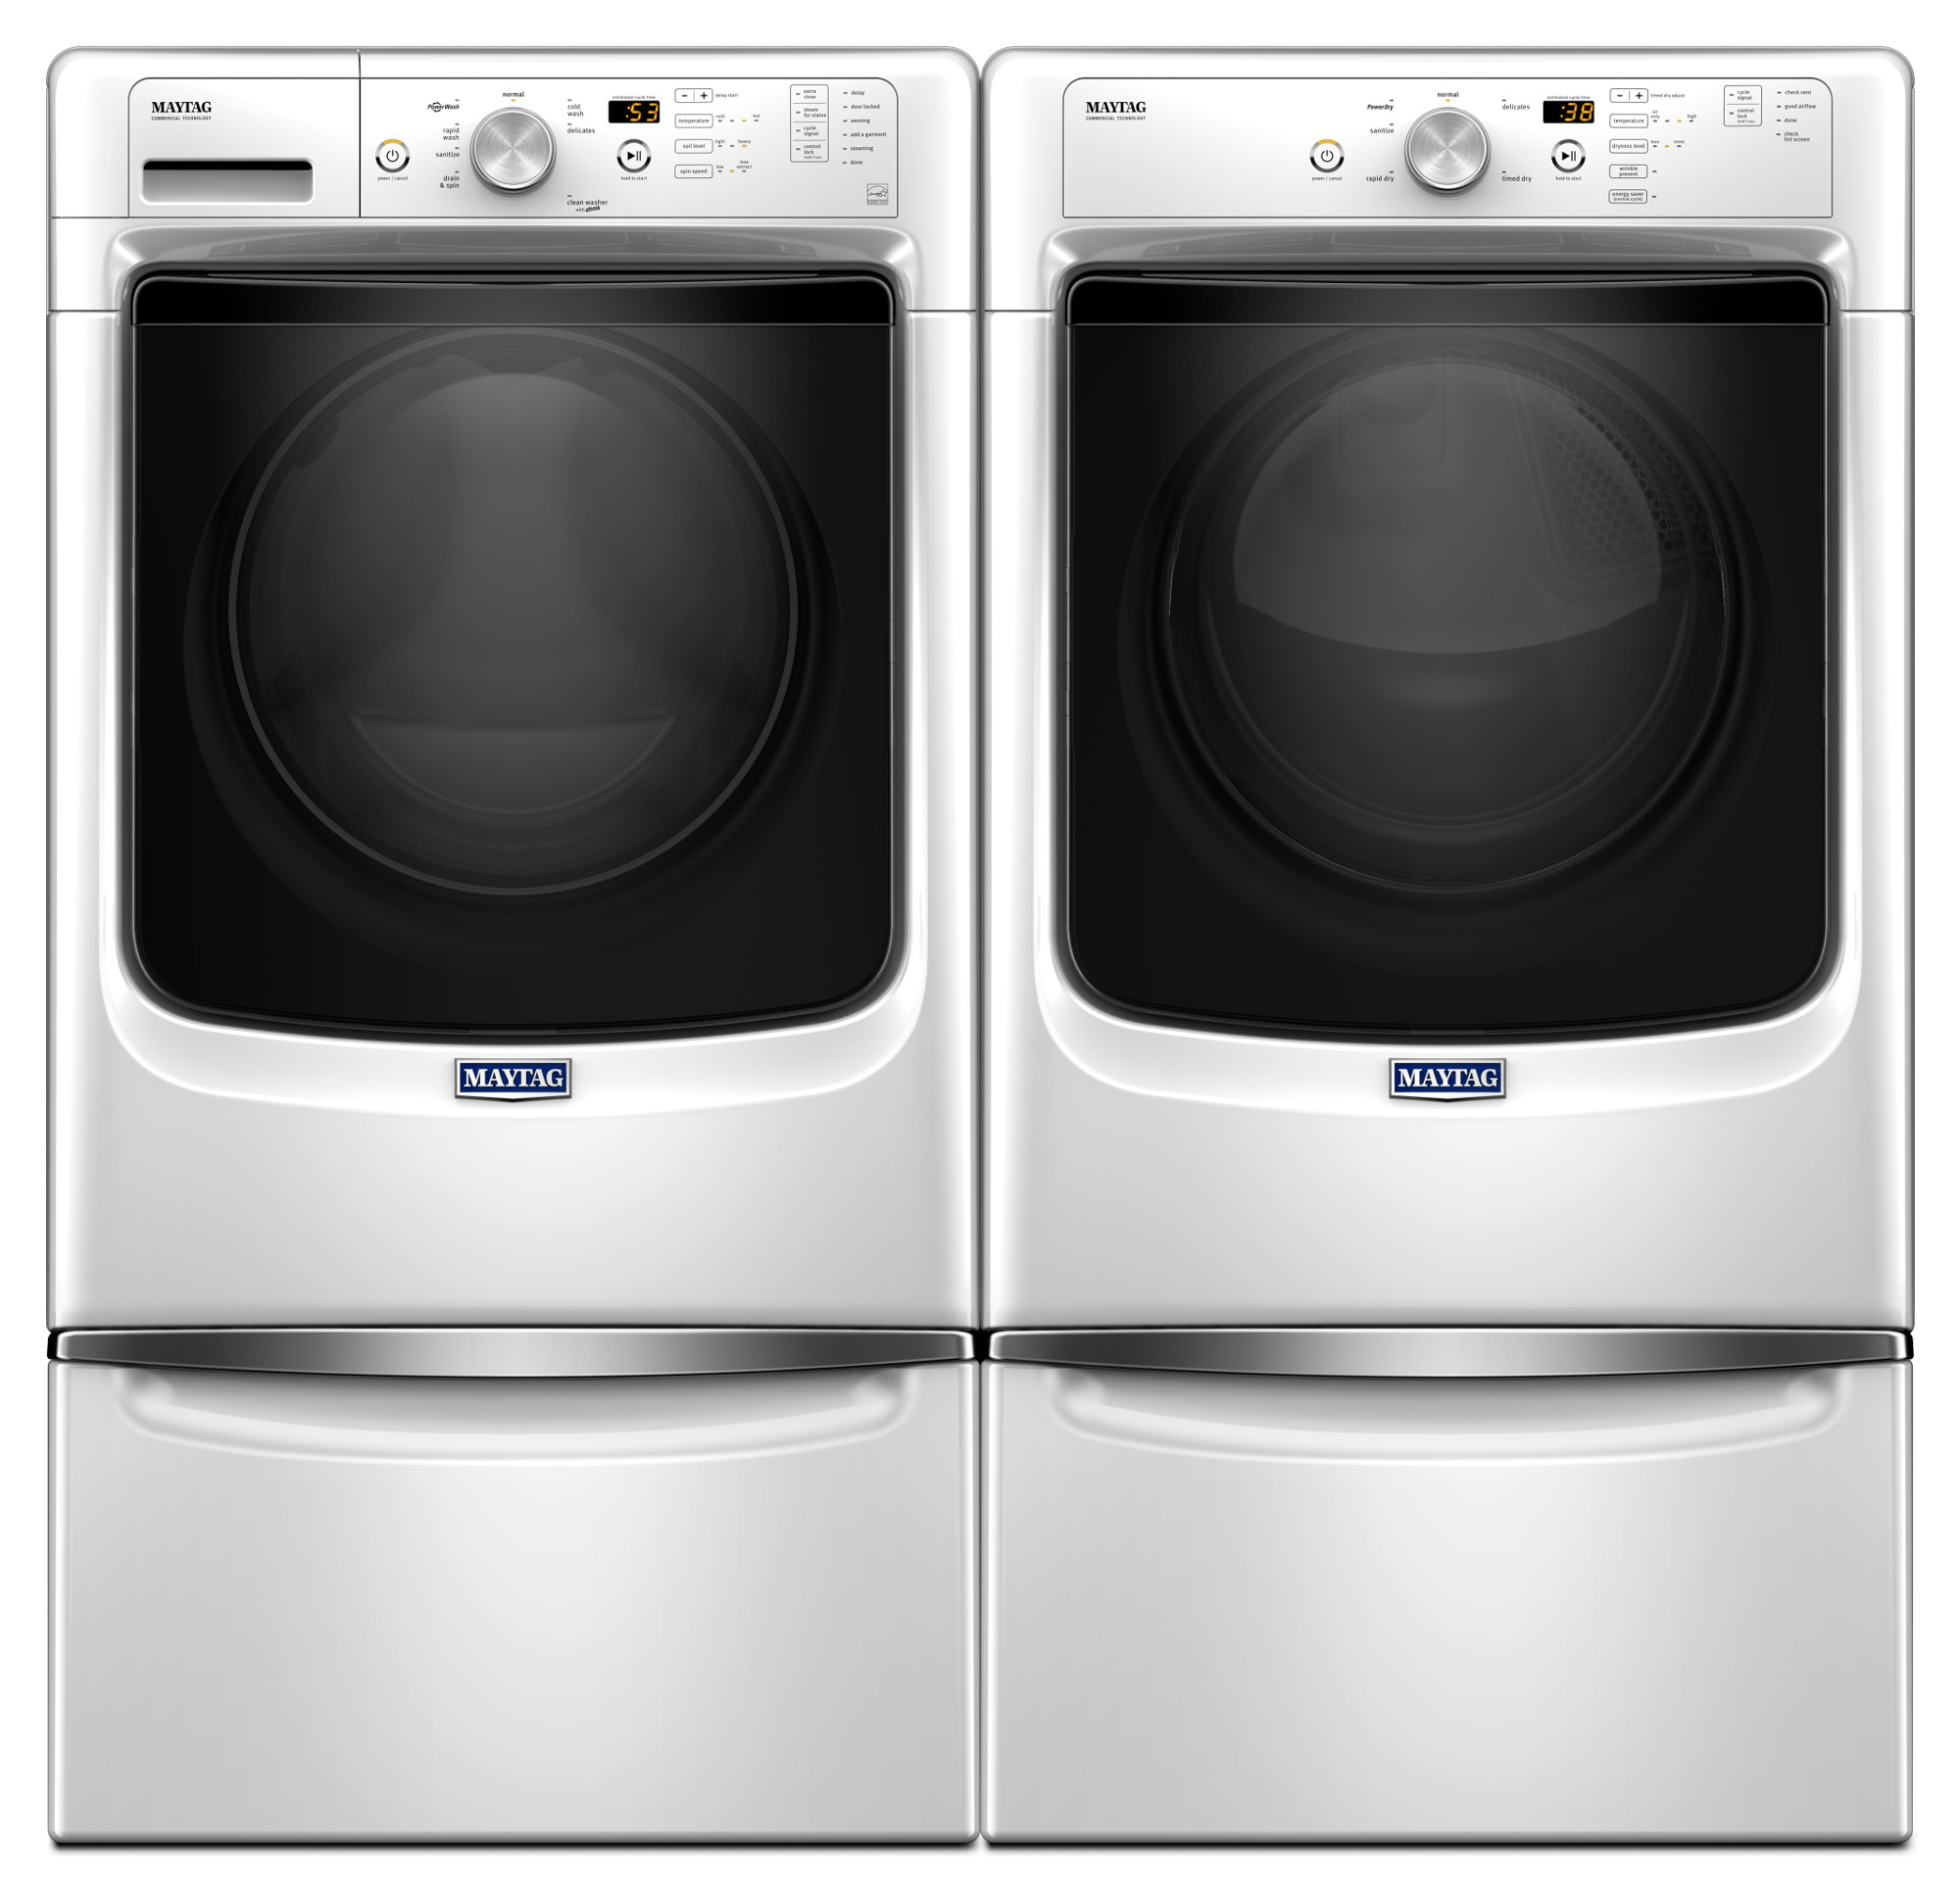 Maytag MGD3500FW 7.4 cu. ft. Gas Dryer - White